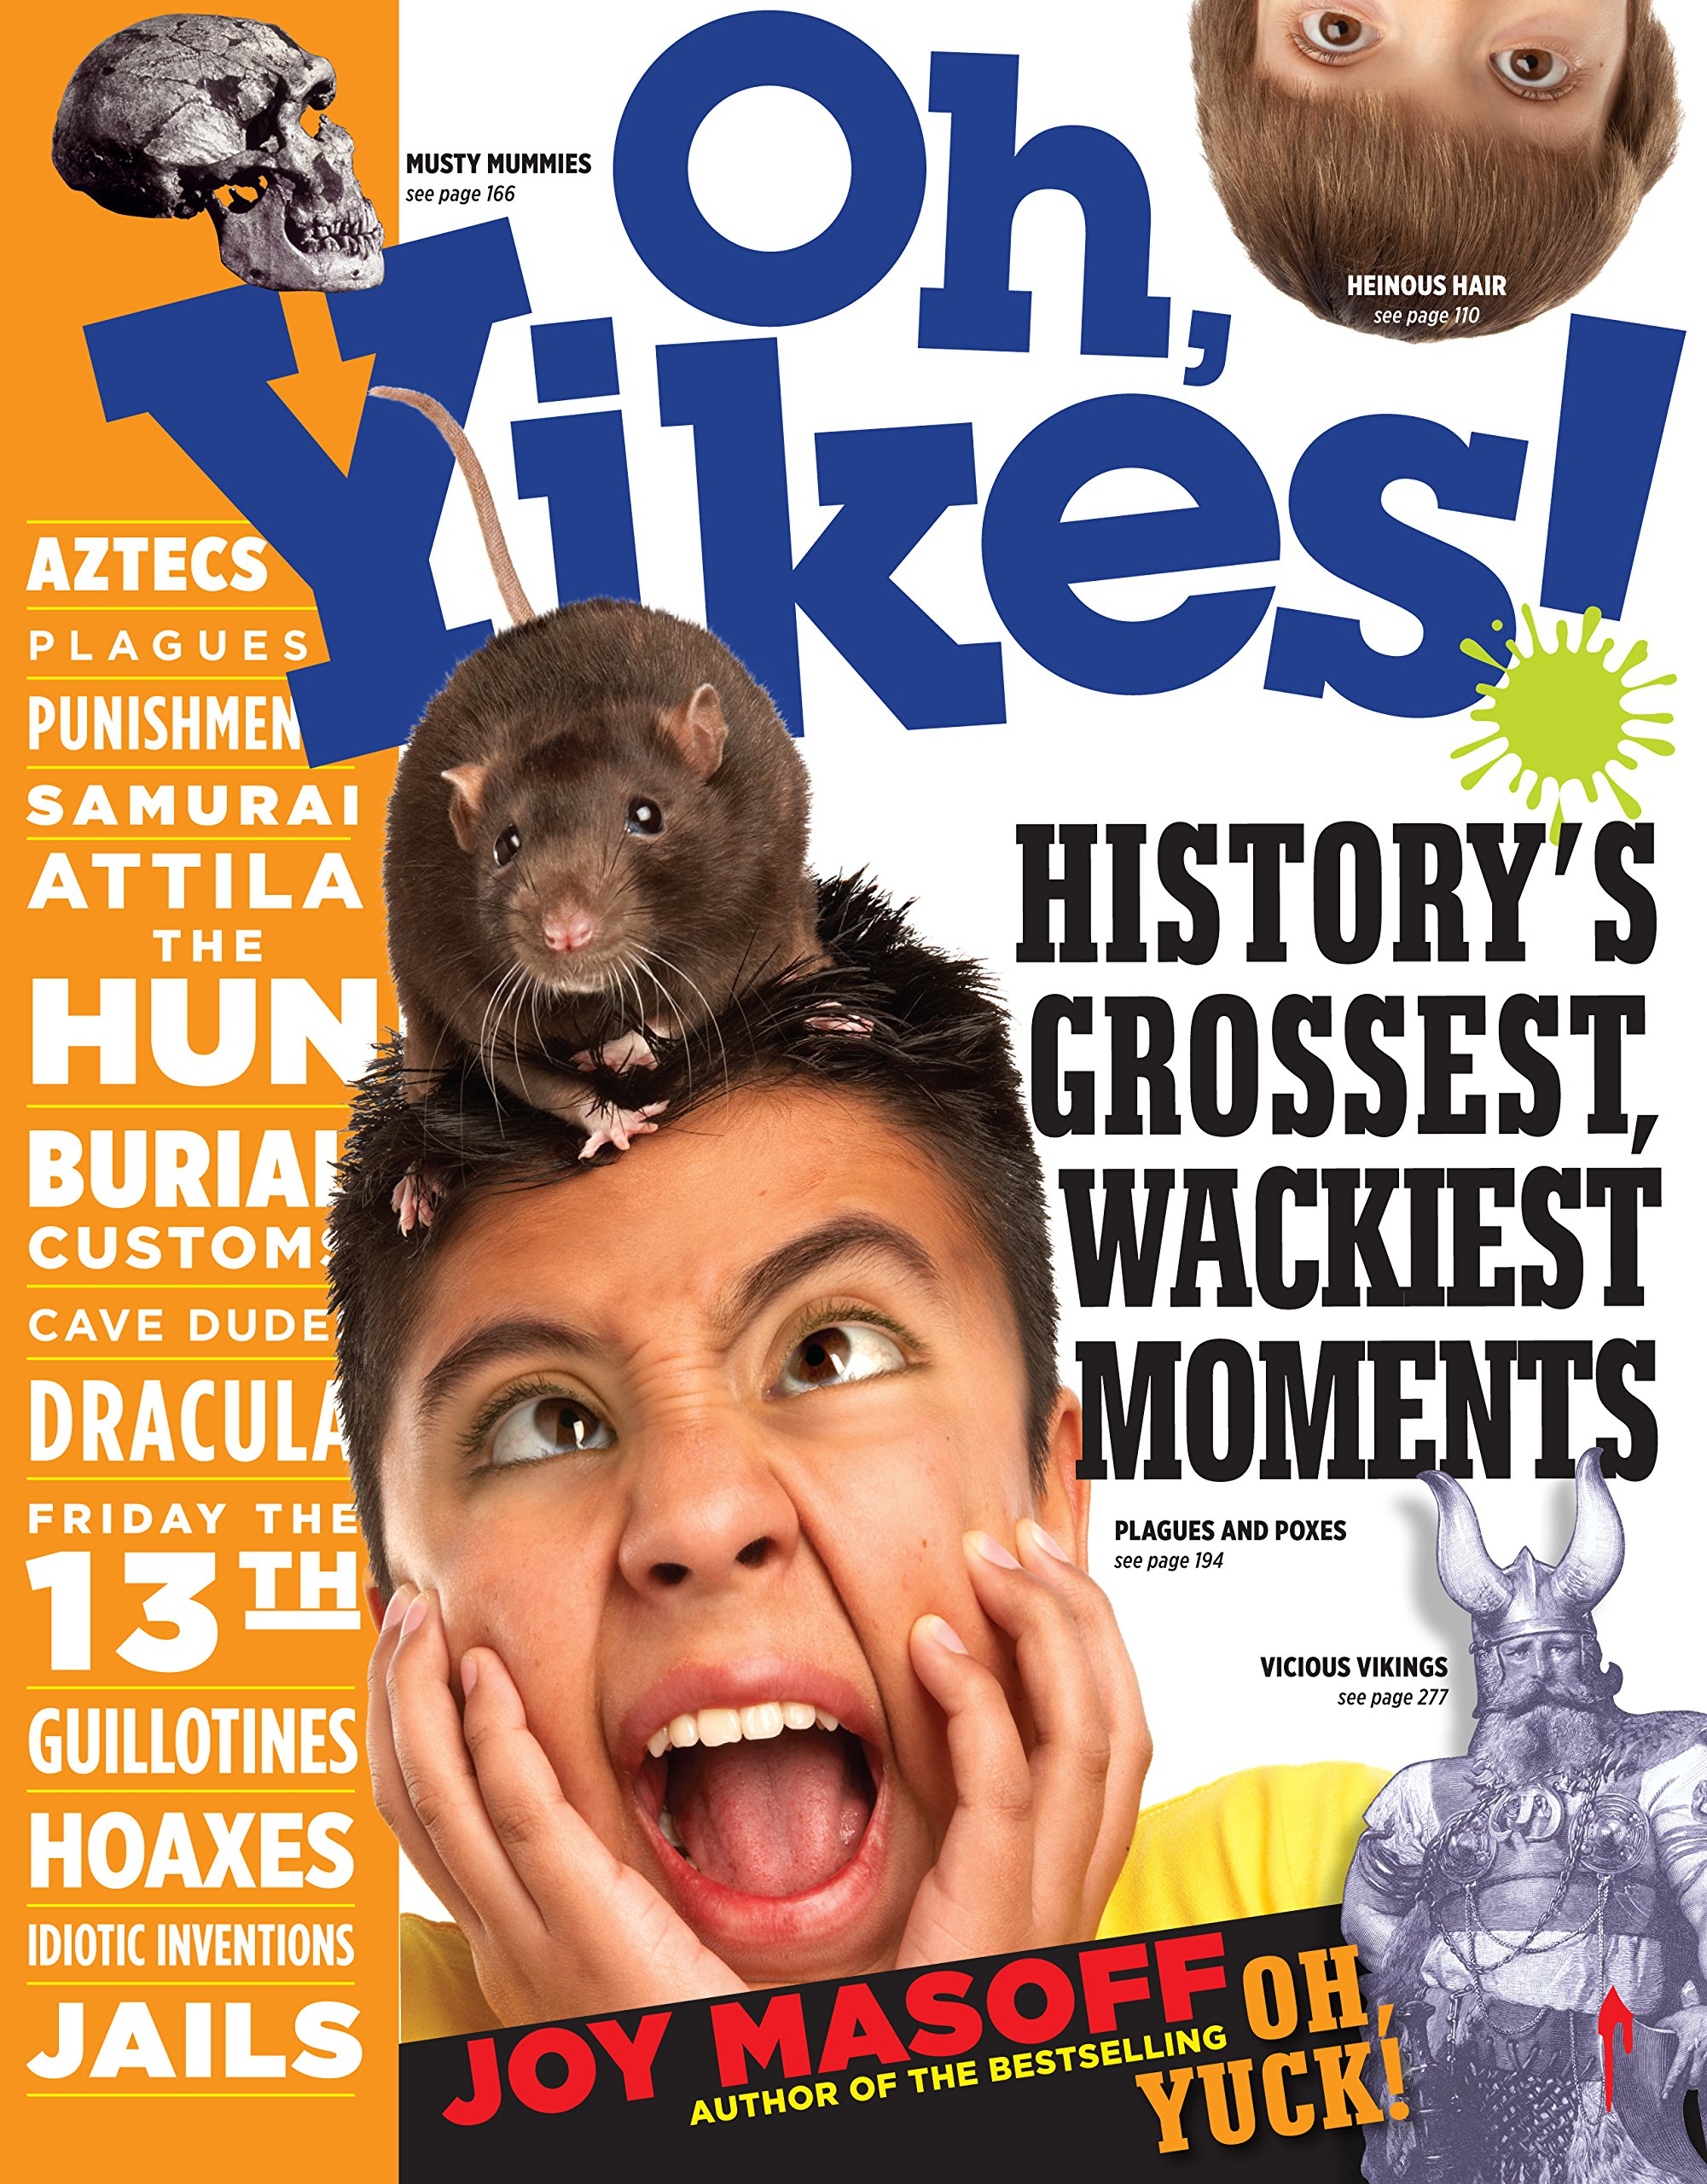 Oh, Yikes!: History's Grossest Wackiest Moments Paperback – August 24, 2006 Joy Masoff Terry Sirrell Workman Publishing Company 0761136843